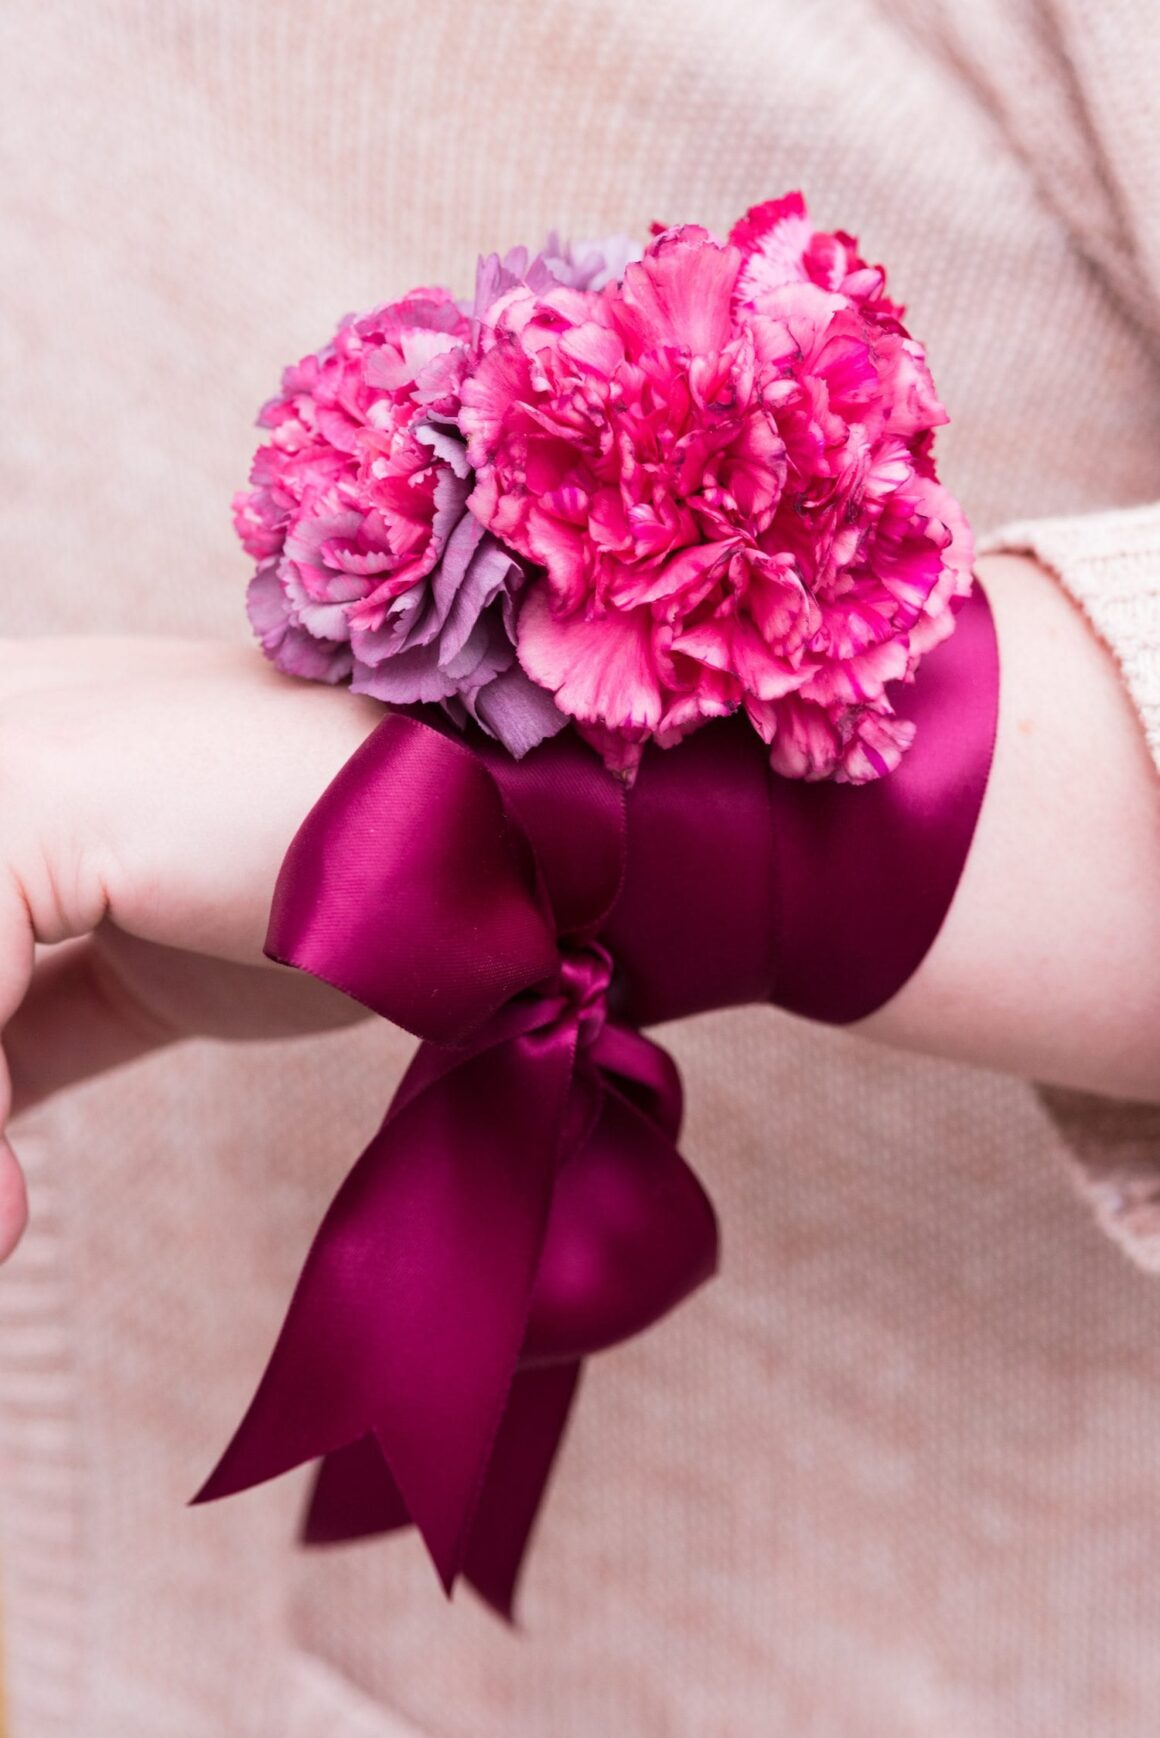 DIY Gifts for Mom: Homemade Wrist Corsage